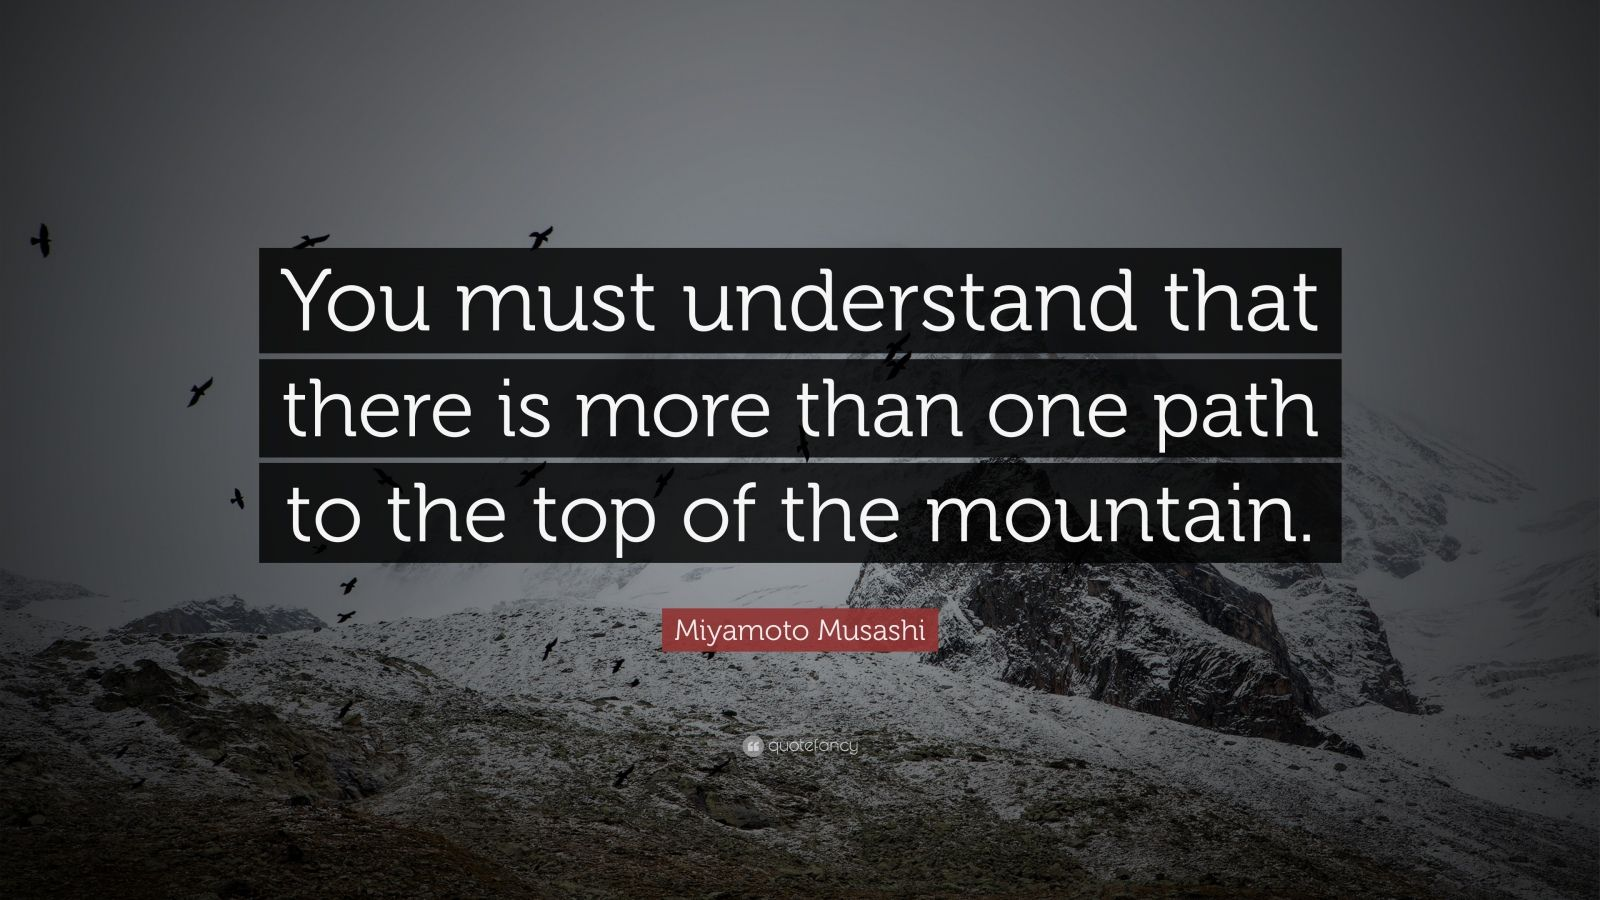 Zen Quote Wallpaper Miyamoto Musashi Quote You Must Understand That There Is